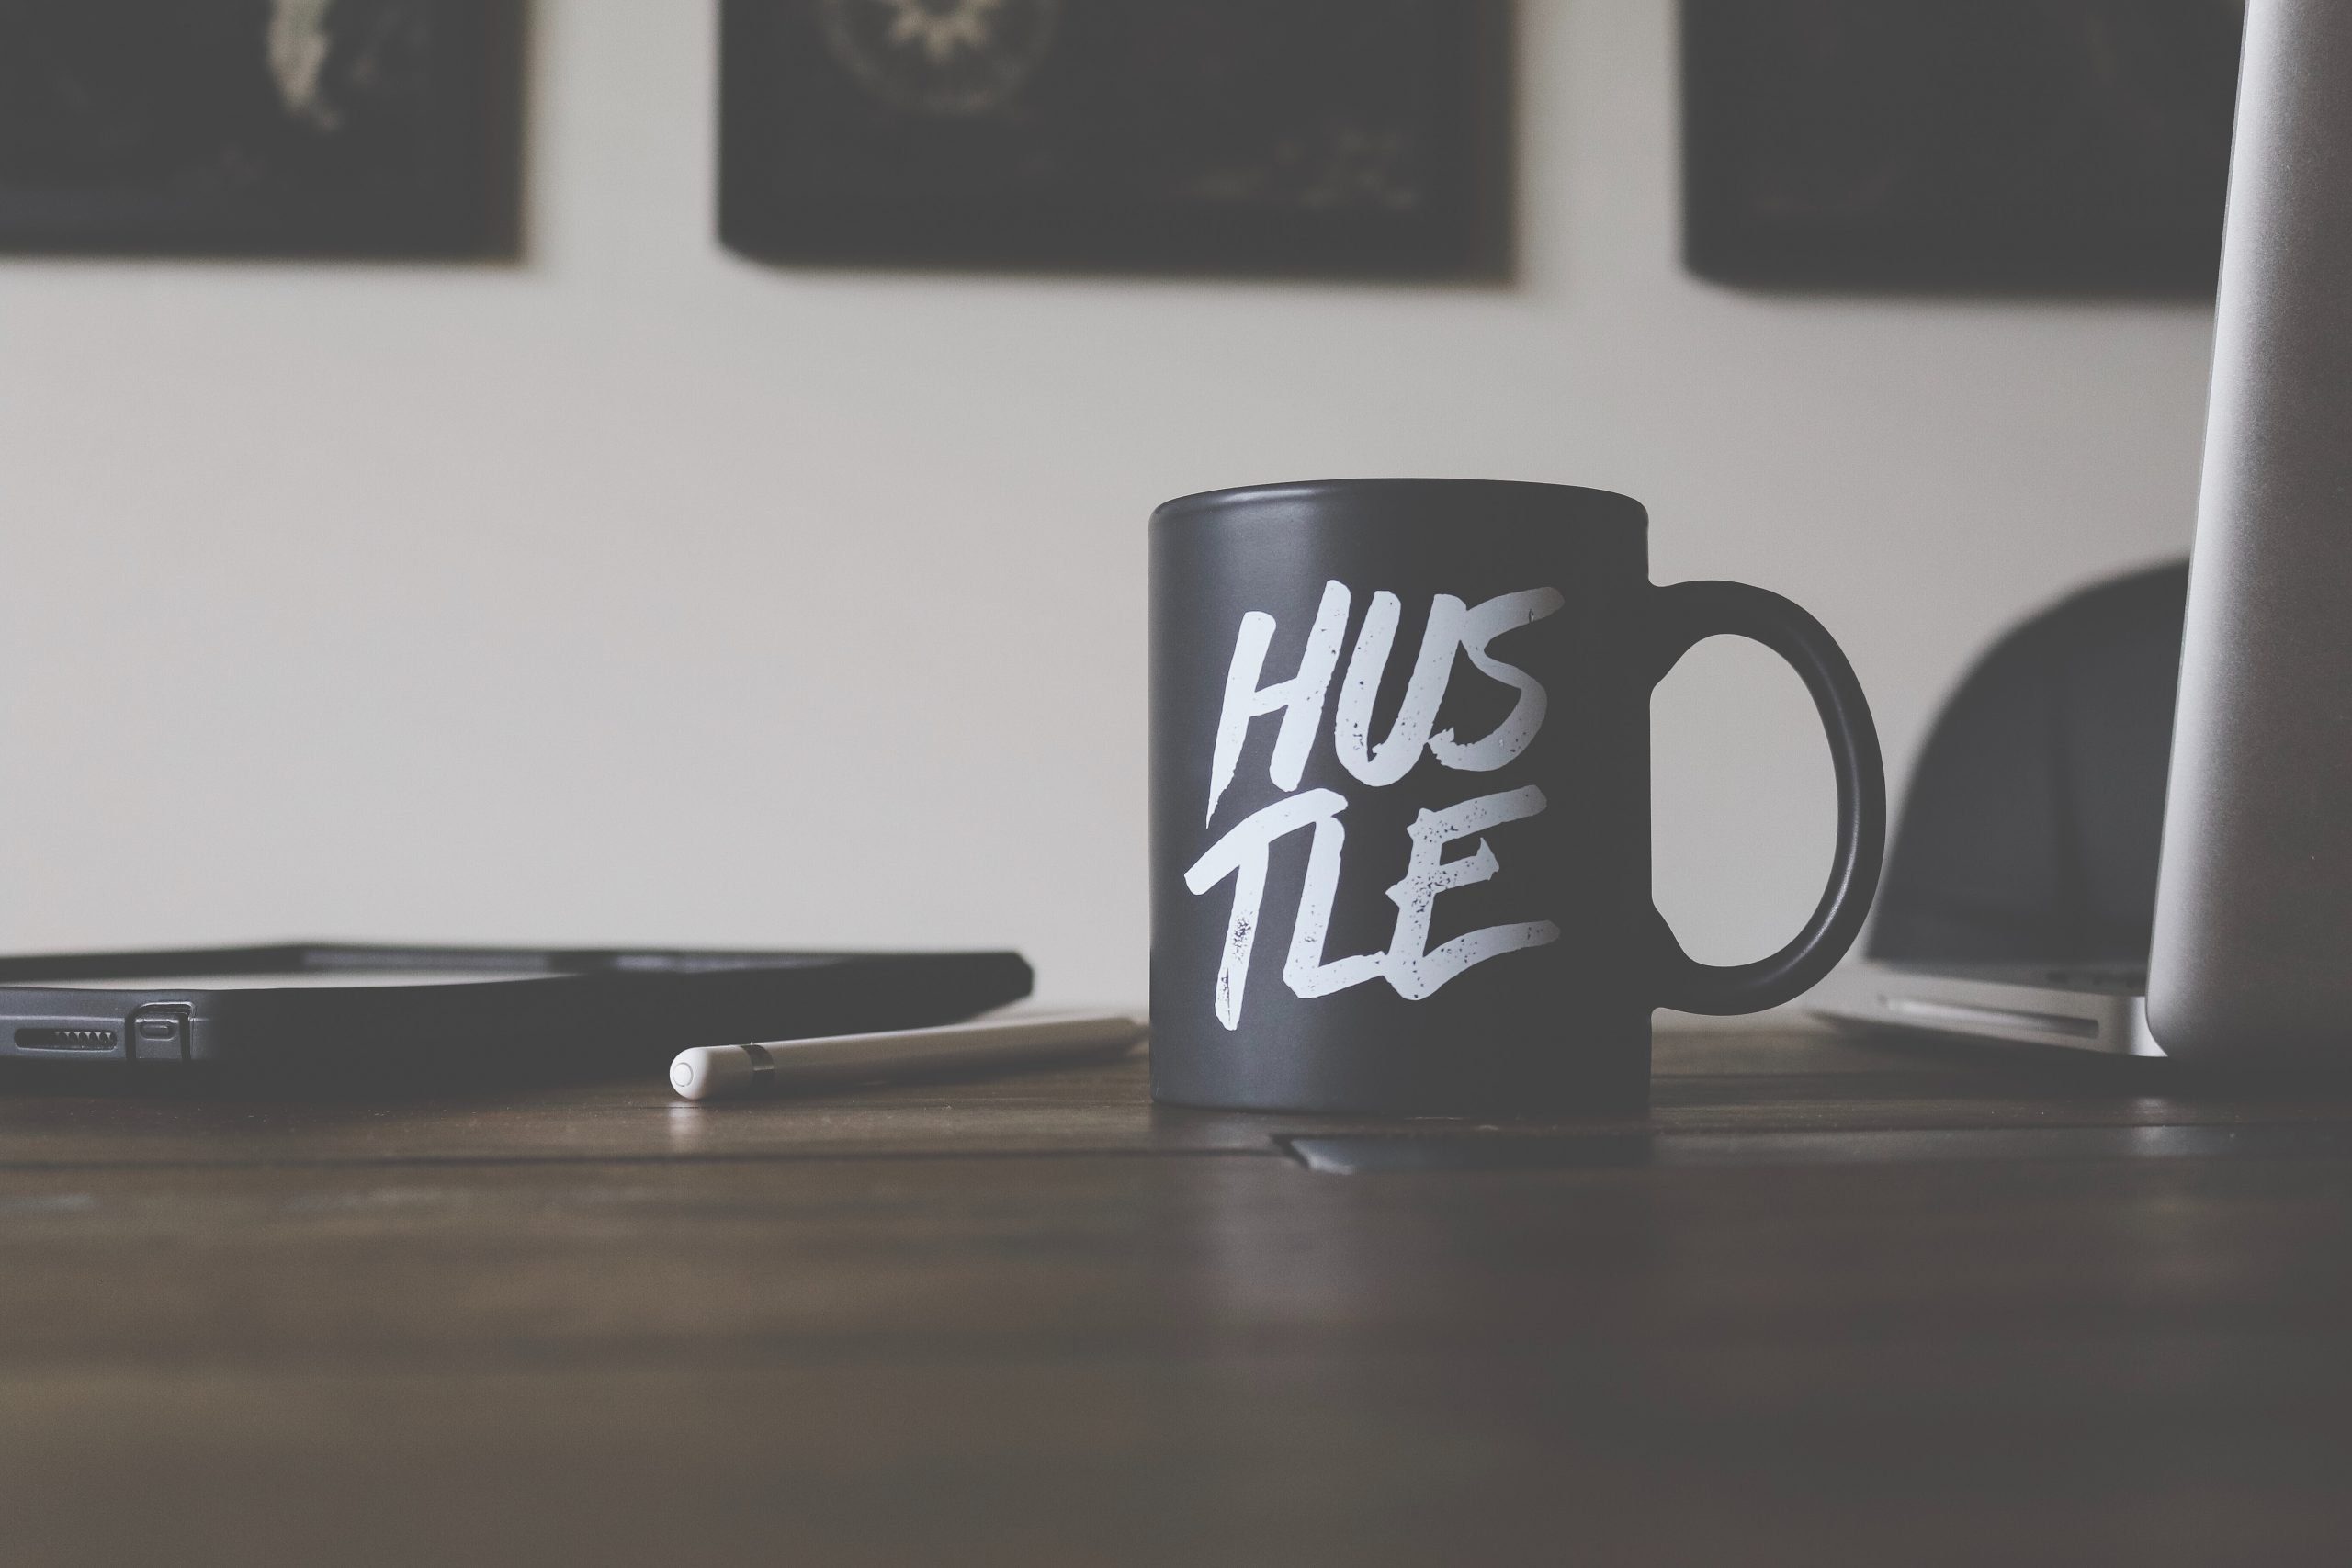 Starting a side hustle part two